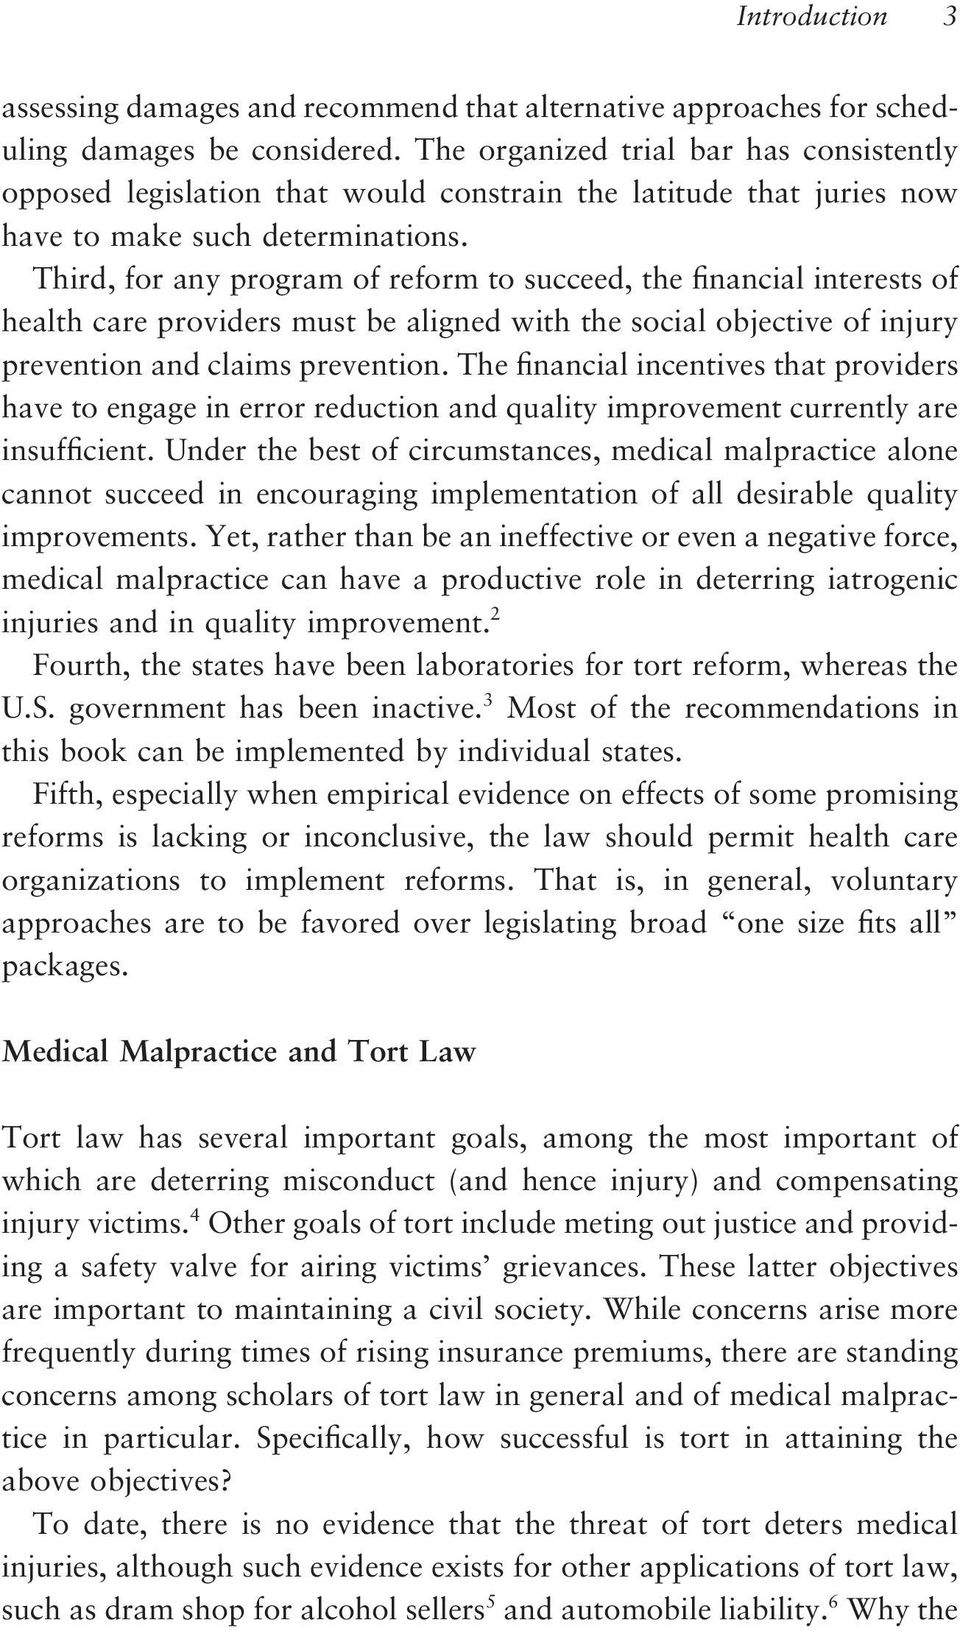 Third, for any program of reform to succeed, the financial interests of health care providers must be aligned with the social objective of injury prevention and claims prevention.